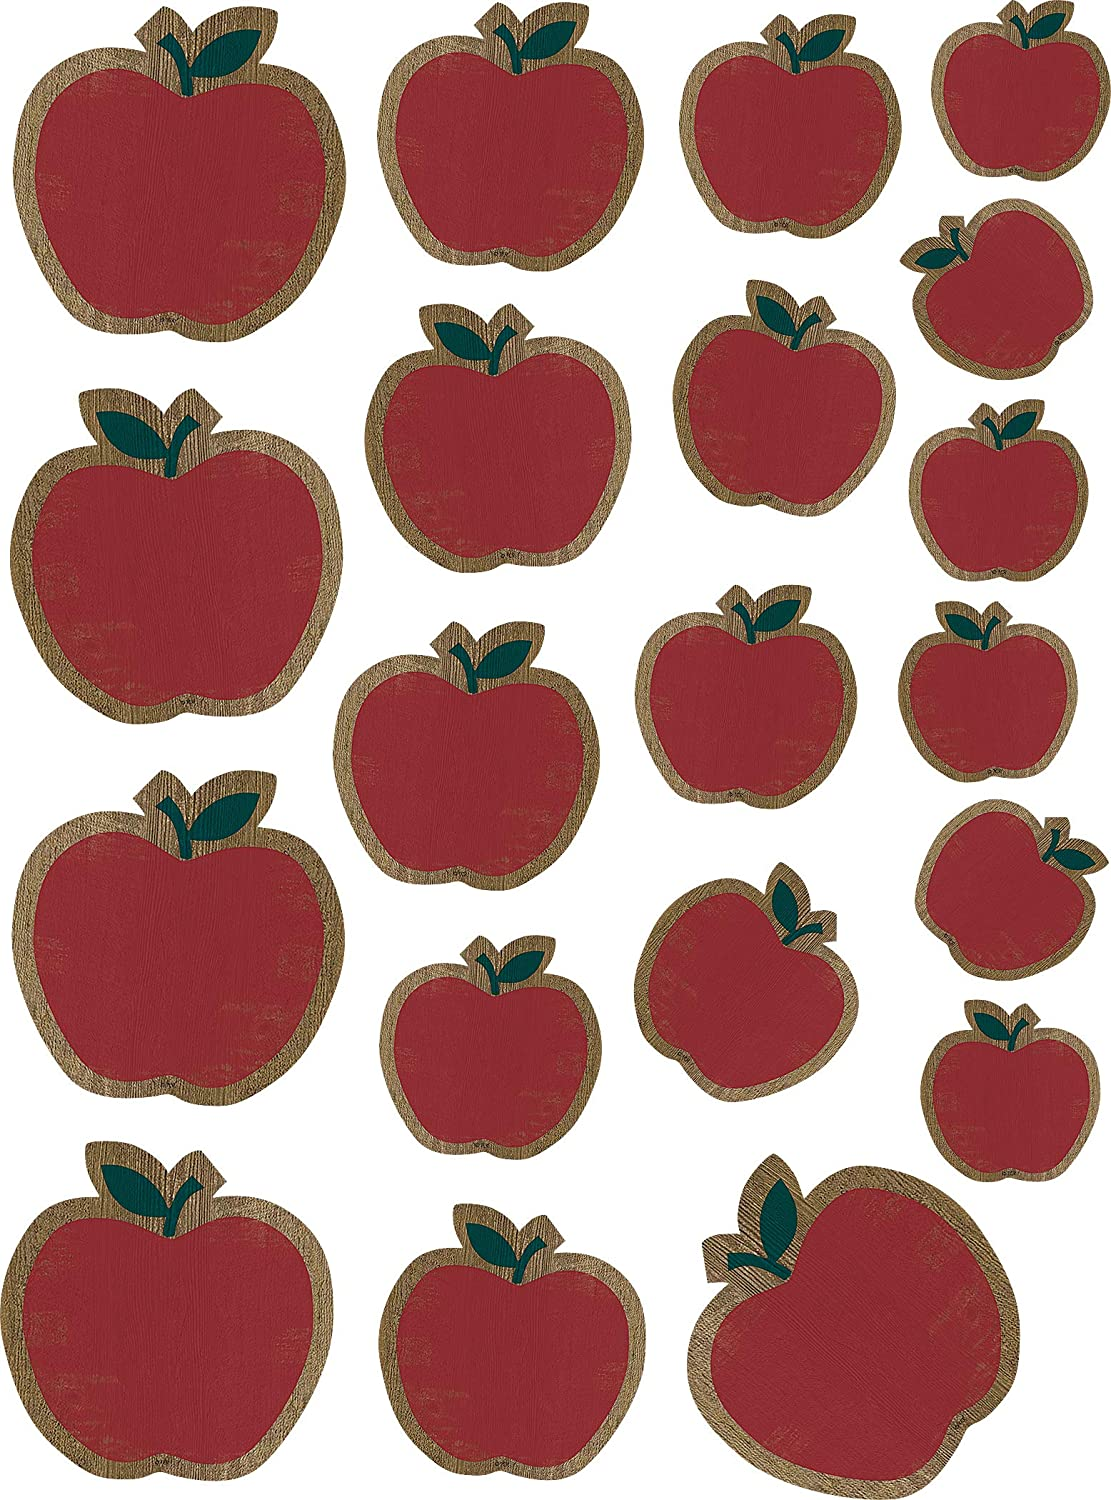 Home Sweet Classroom Apples Accents - Assorted Sizes